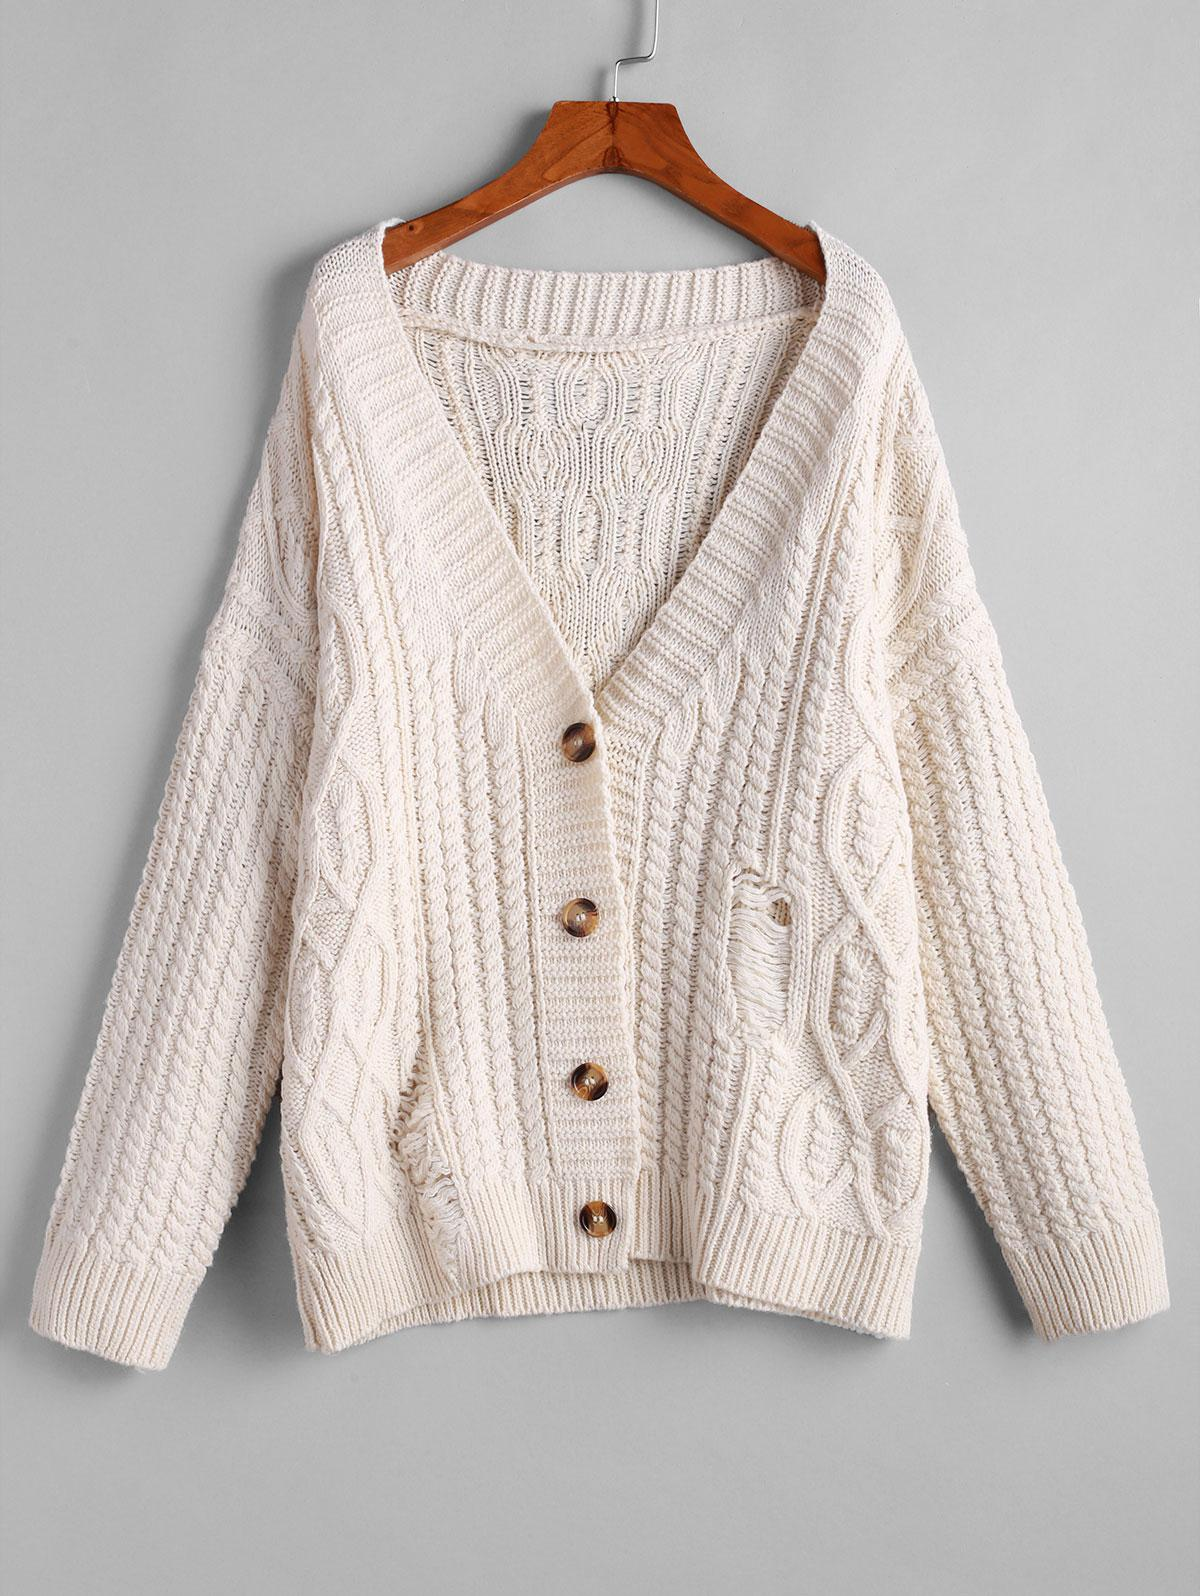 ZAFUL Button Up Cable Knit Solid Chunky Cardigan thumbnail